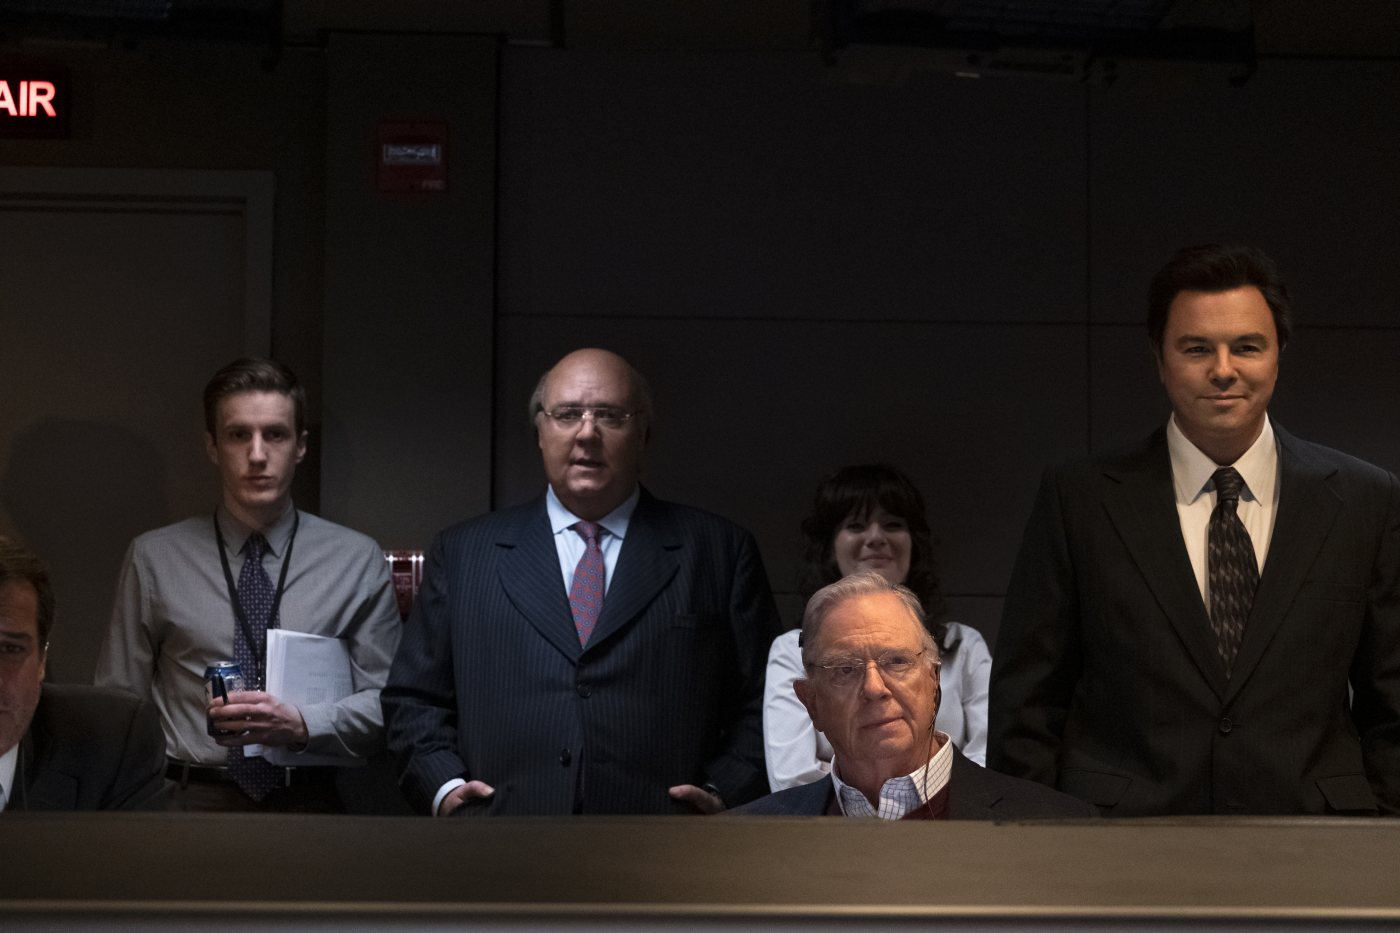 "(L-R): Russell Crowe as Roger Ailes, Aleksa Palladino as Judy Laterza, Guy Boyd as Chet Collier and Seth MacFarlane as Brian Lewis in THE LOUDEST VOICE, ""1996"". Photo Credit: JoJo Whilden/SHOWTIME."